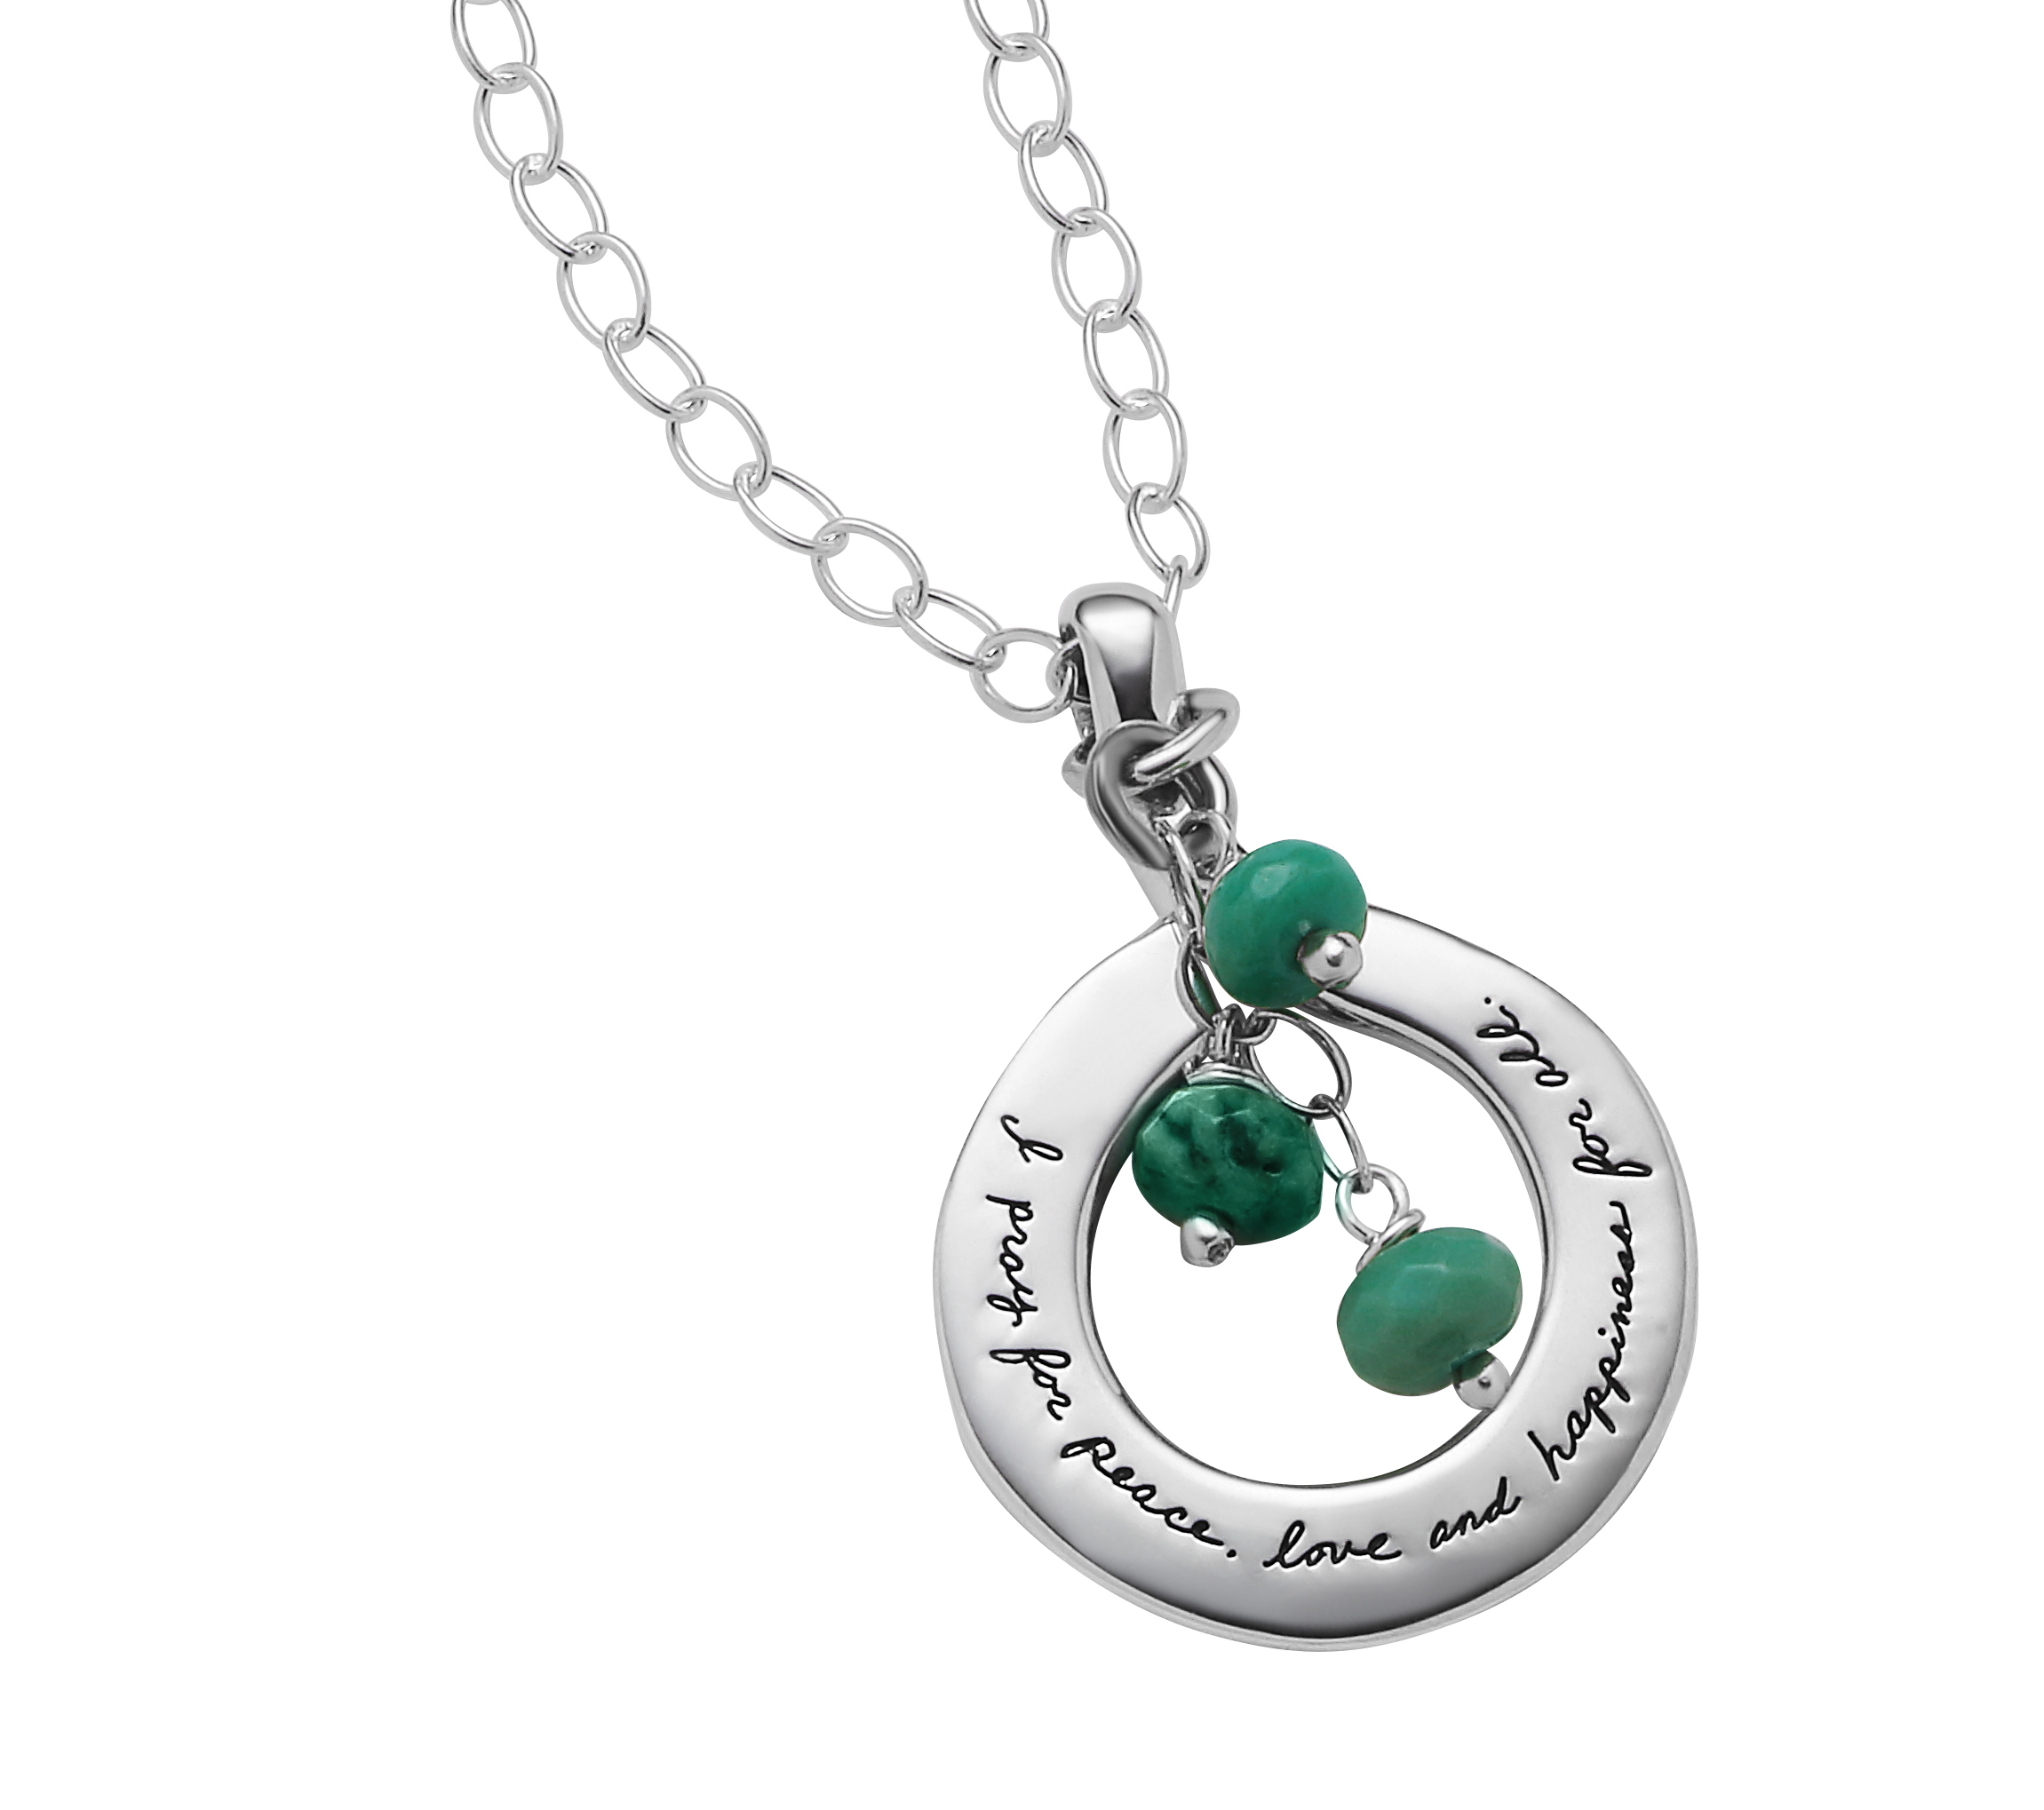 Sterling Silver open circle necklace with three hanging chrysoprase beads in front. The quote reads: I pray for peace, love and happiness for all.